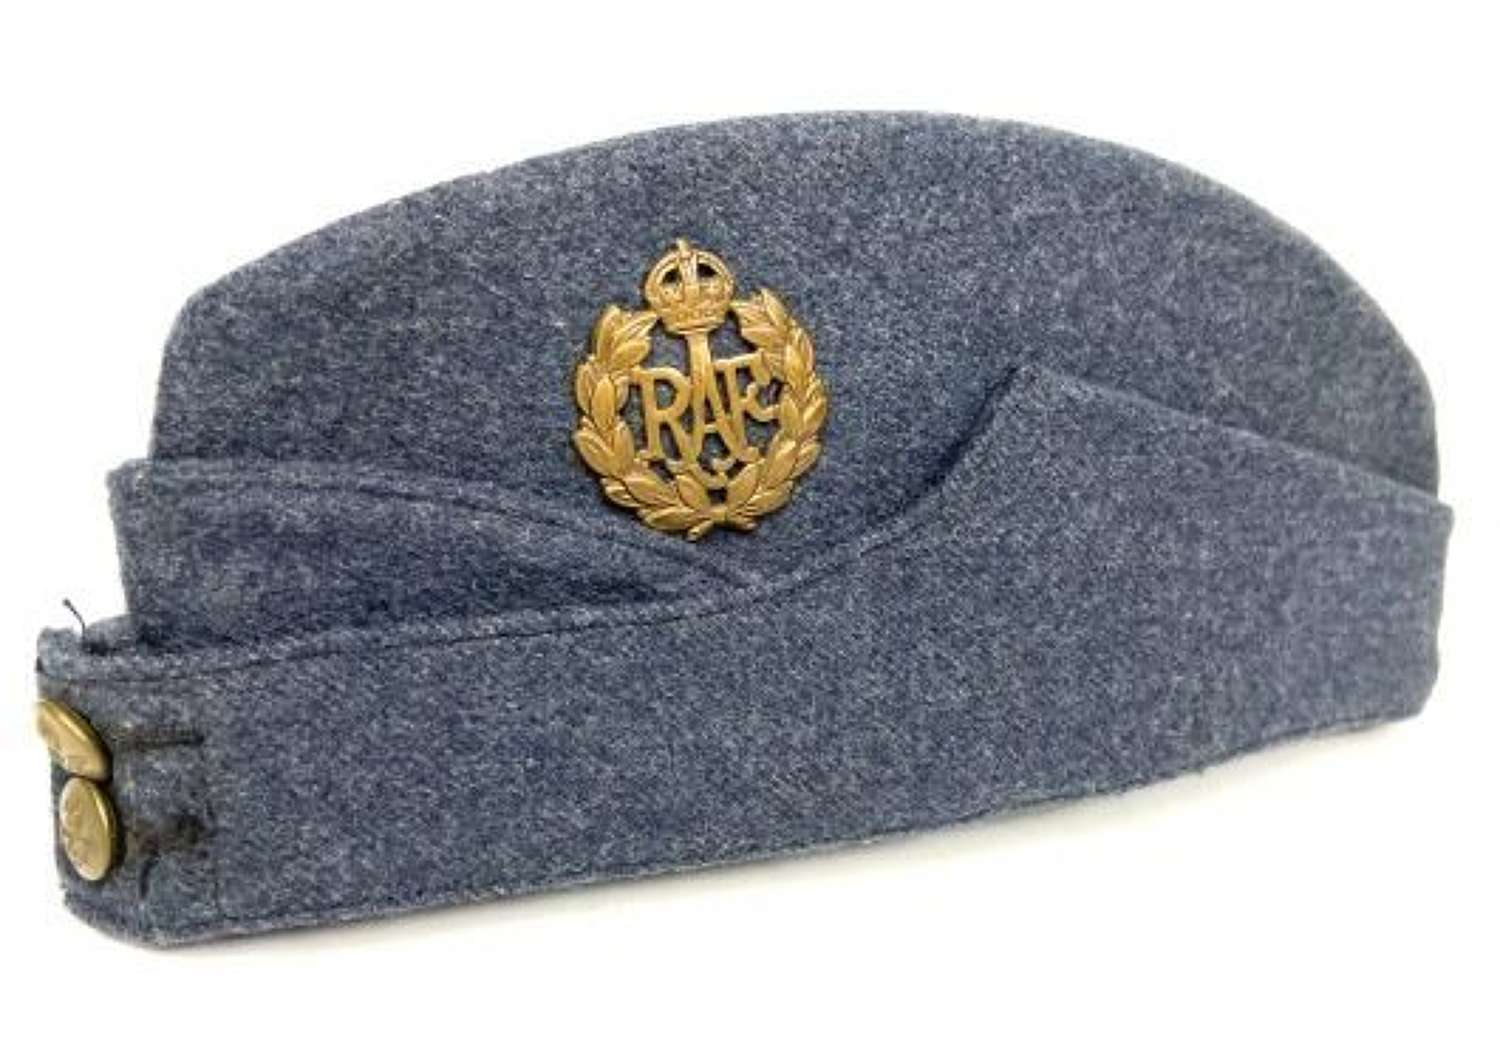 Original 1942 Dated RAF Ordinary Airman's Forage Cap - Size 6 7/8